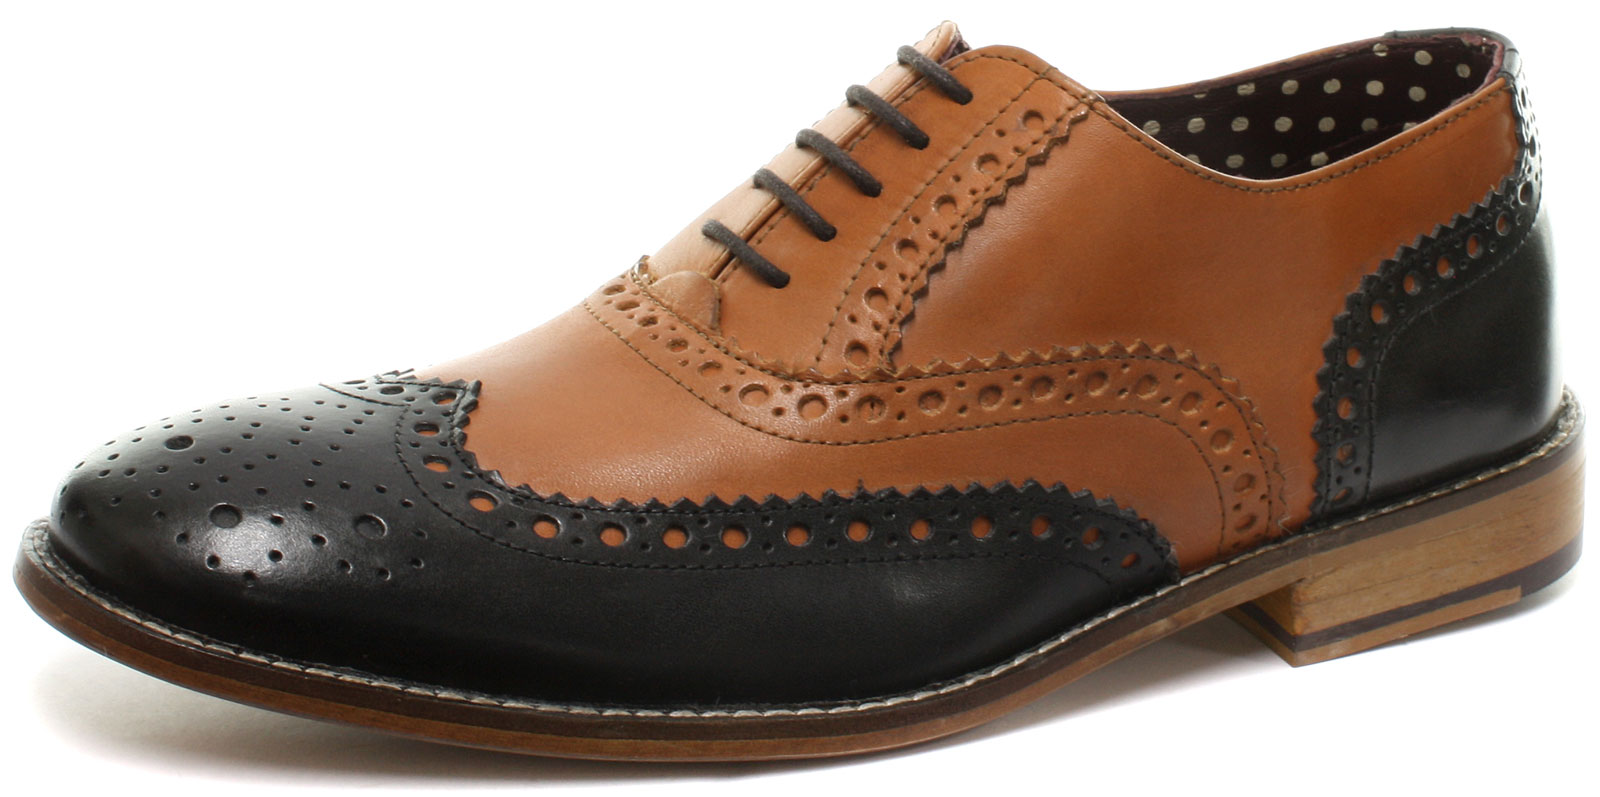 e08aea18f7475 London Brogues Gatsby Leather Mens Brogue Shoes All Sizes and Colours UK 7  Tan/black